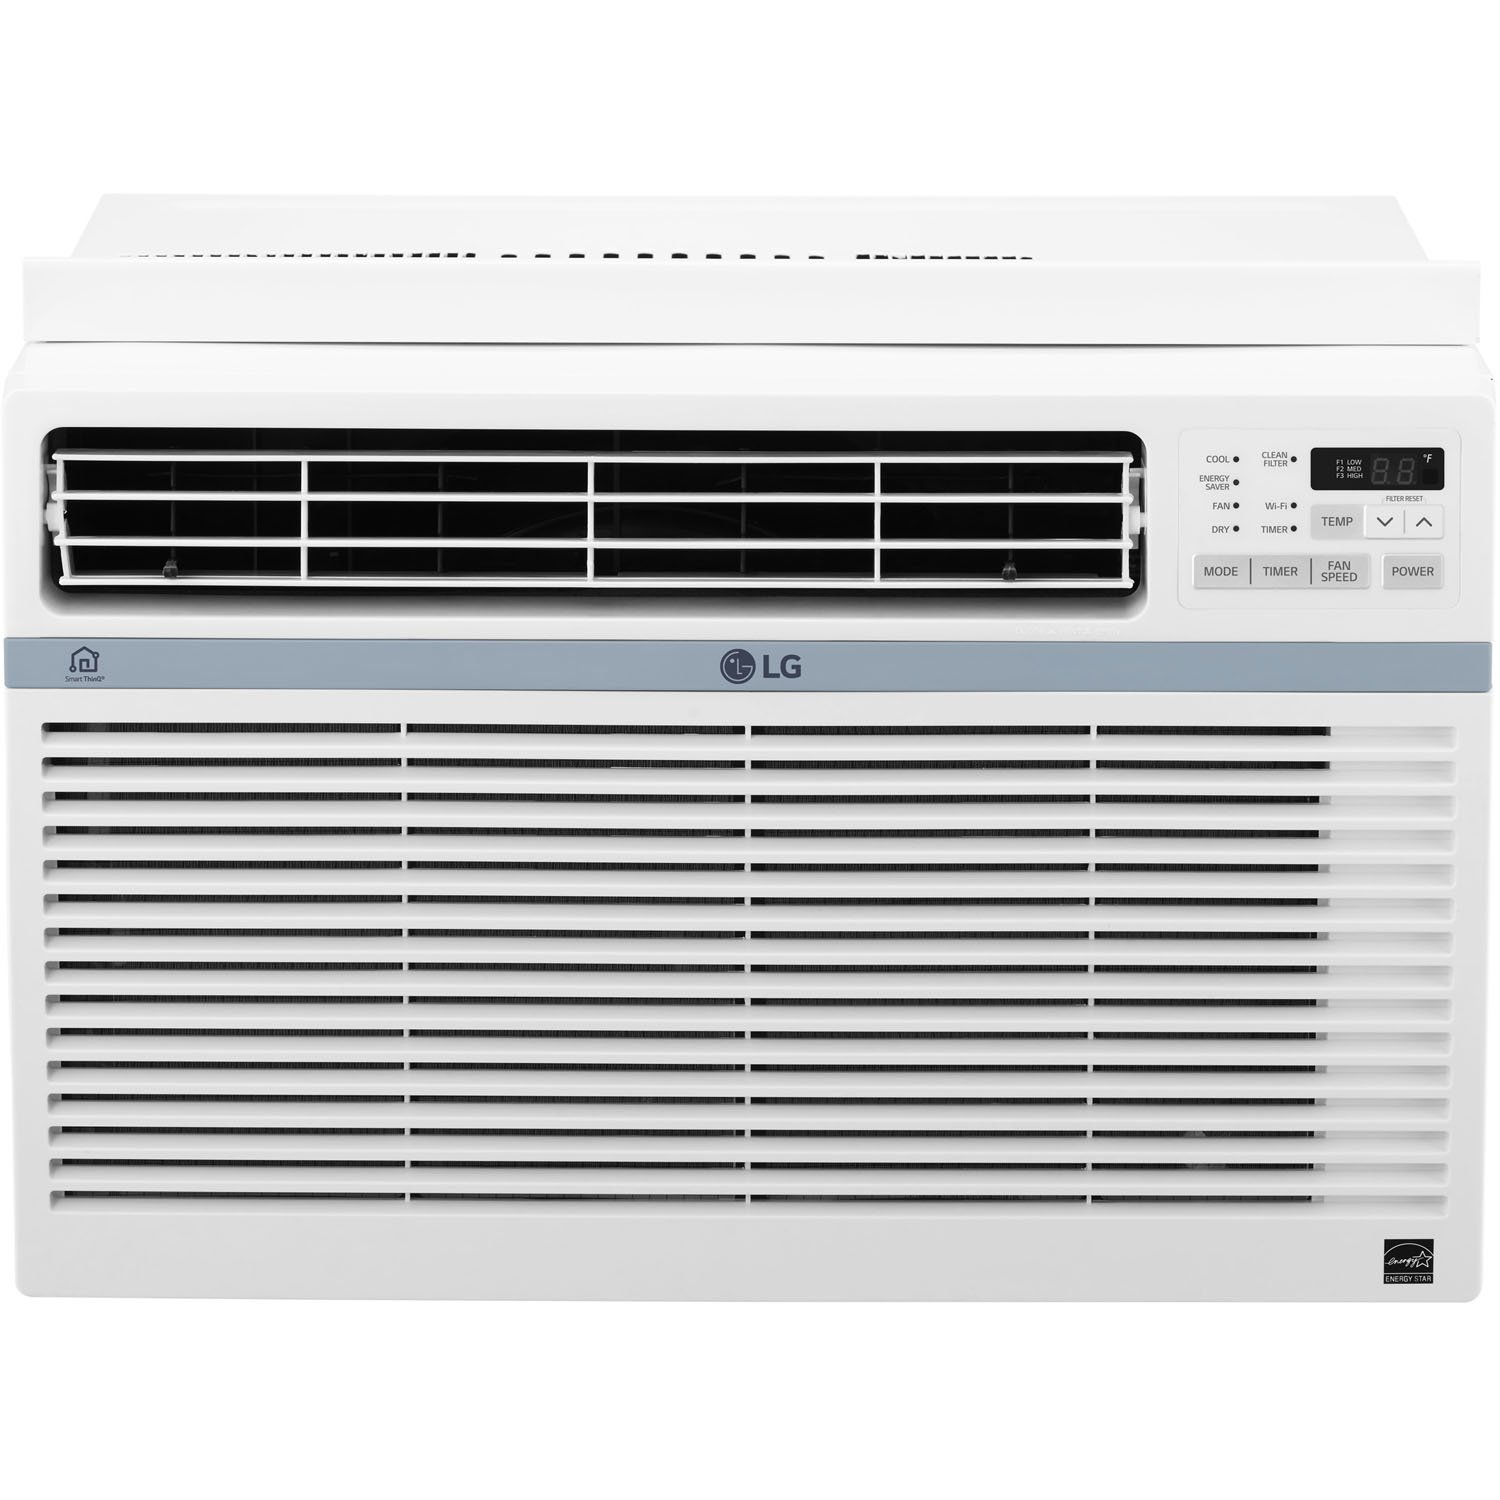 LG Energy Star Window Air Conditioner, 8,000 BTU, White